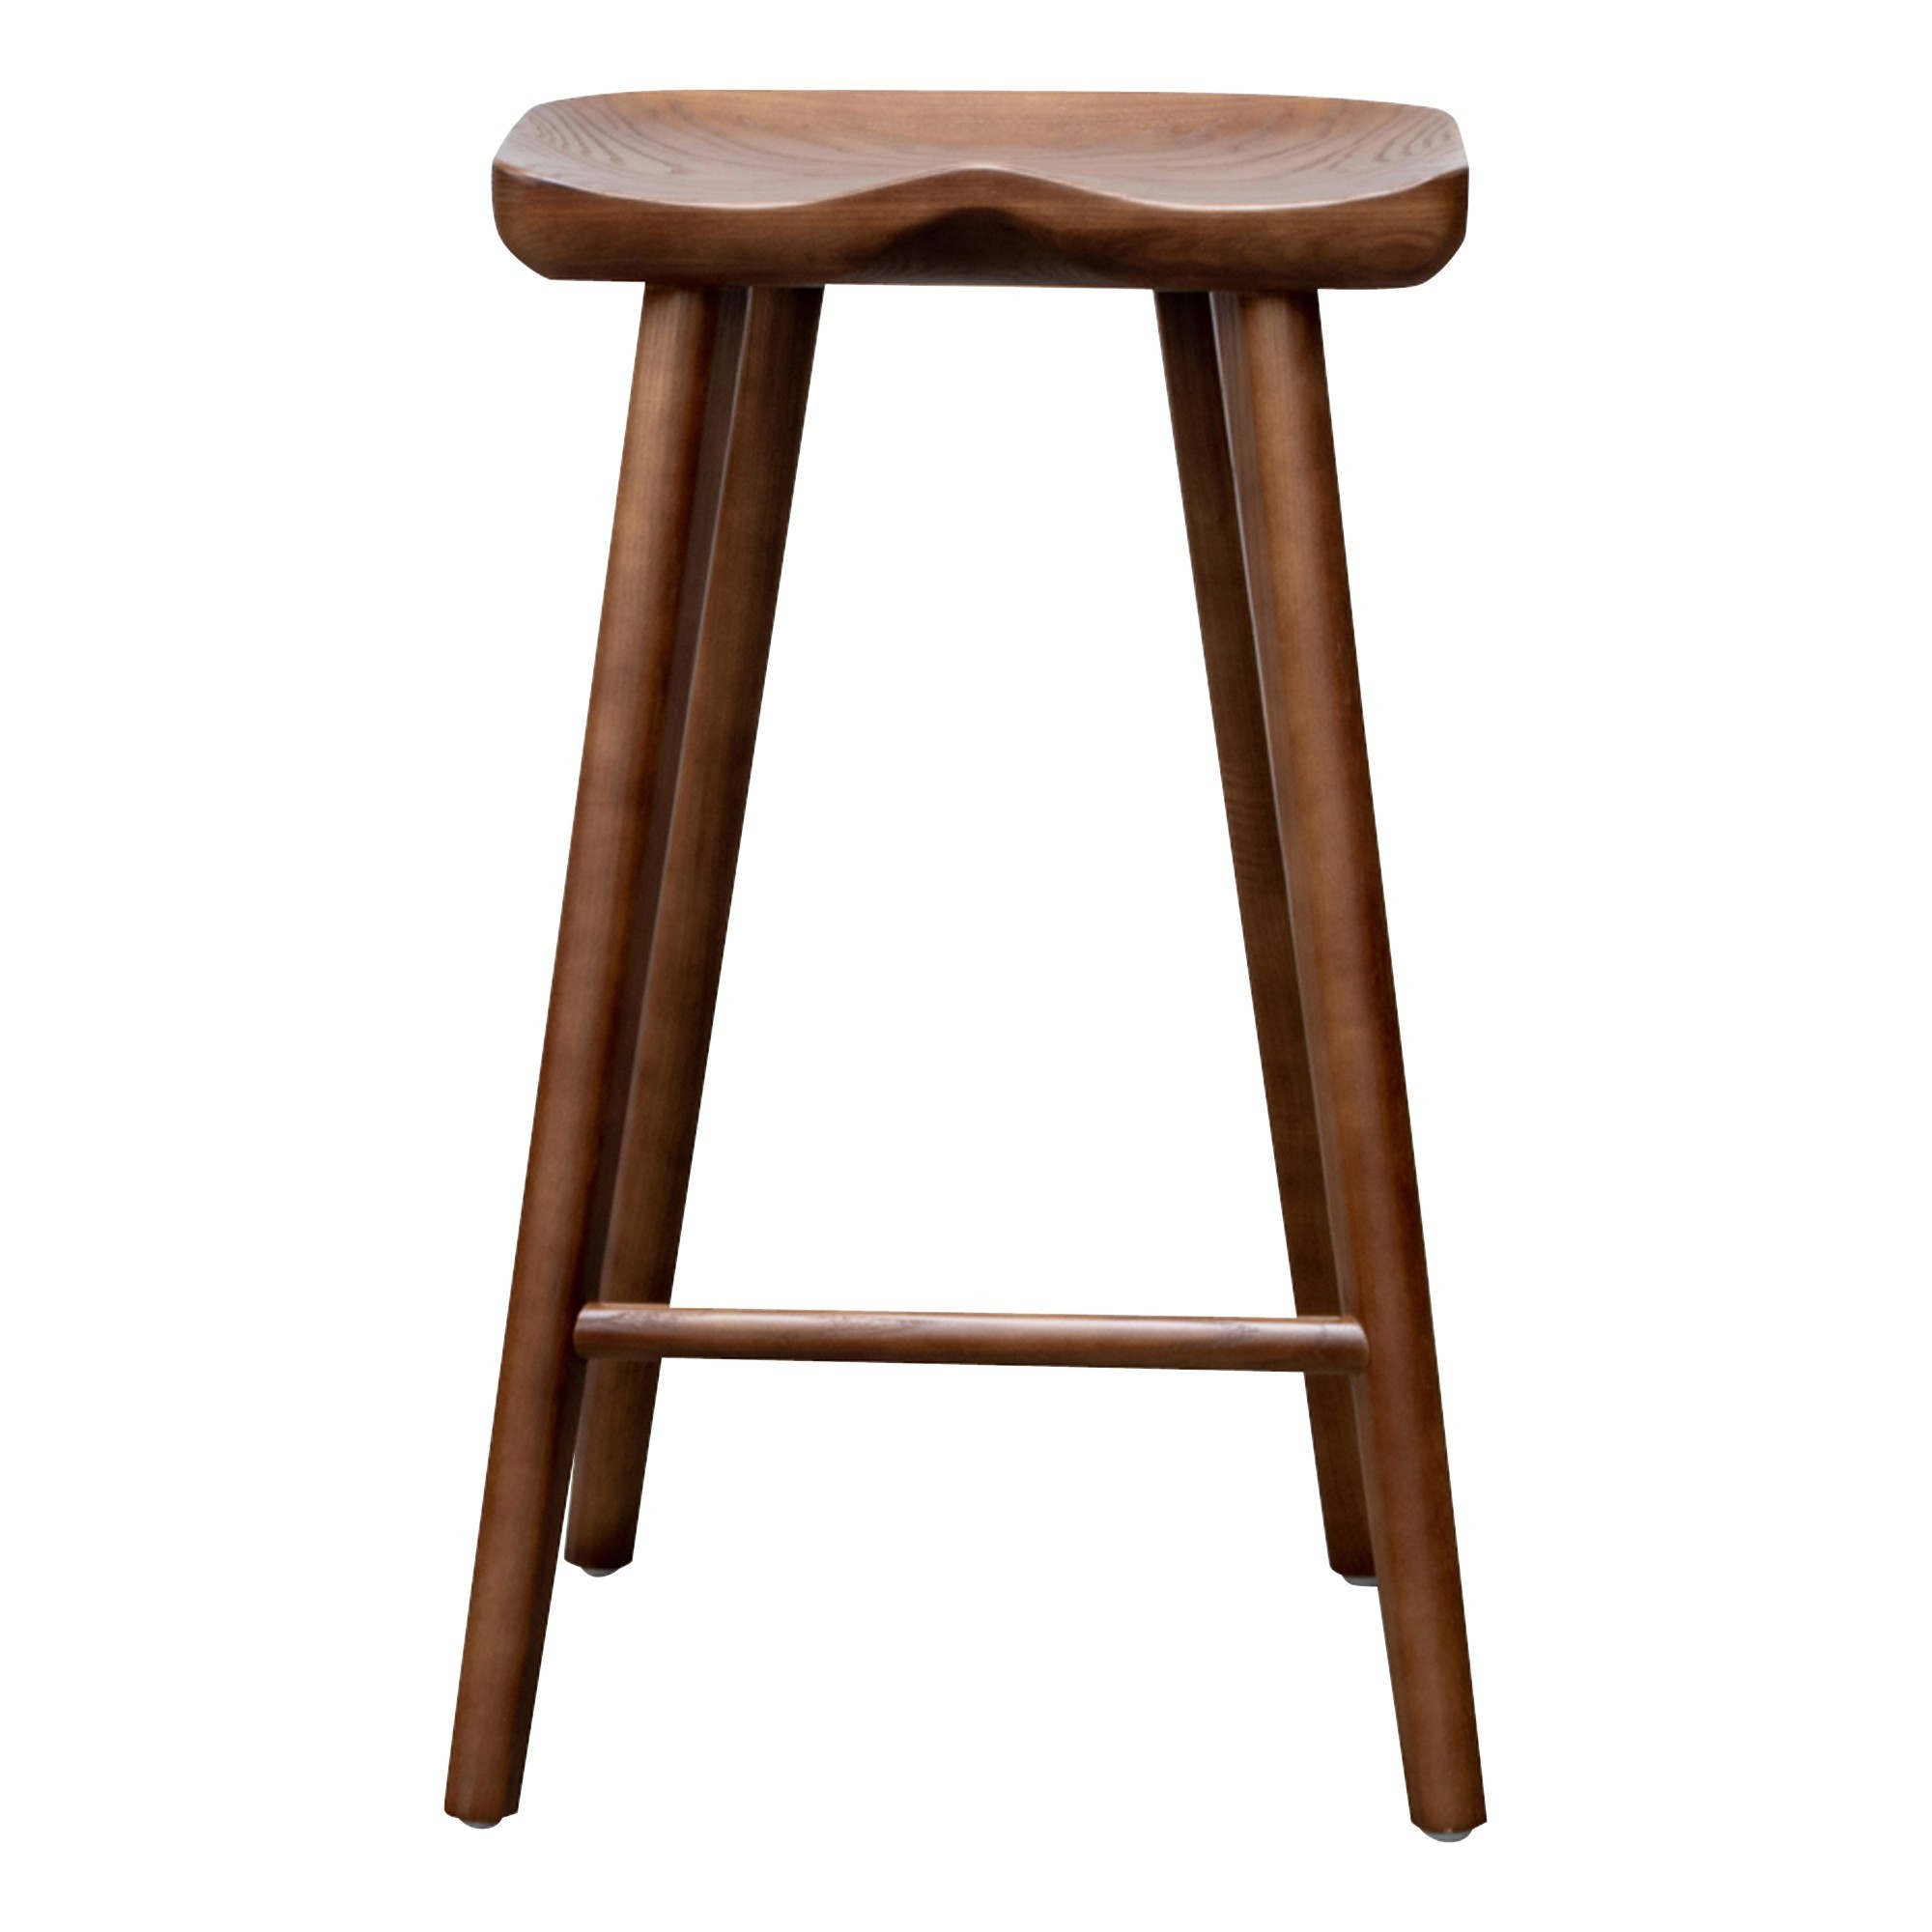 Assens Ash Timber Counter Stool, Walnut